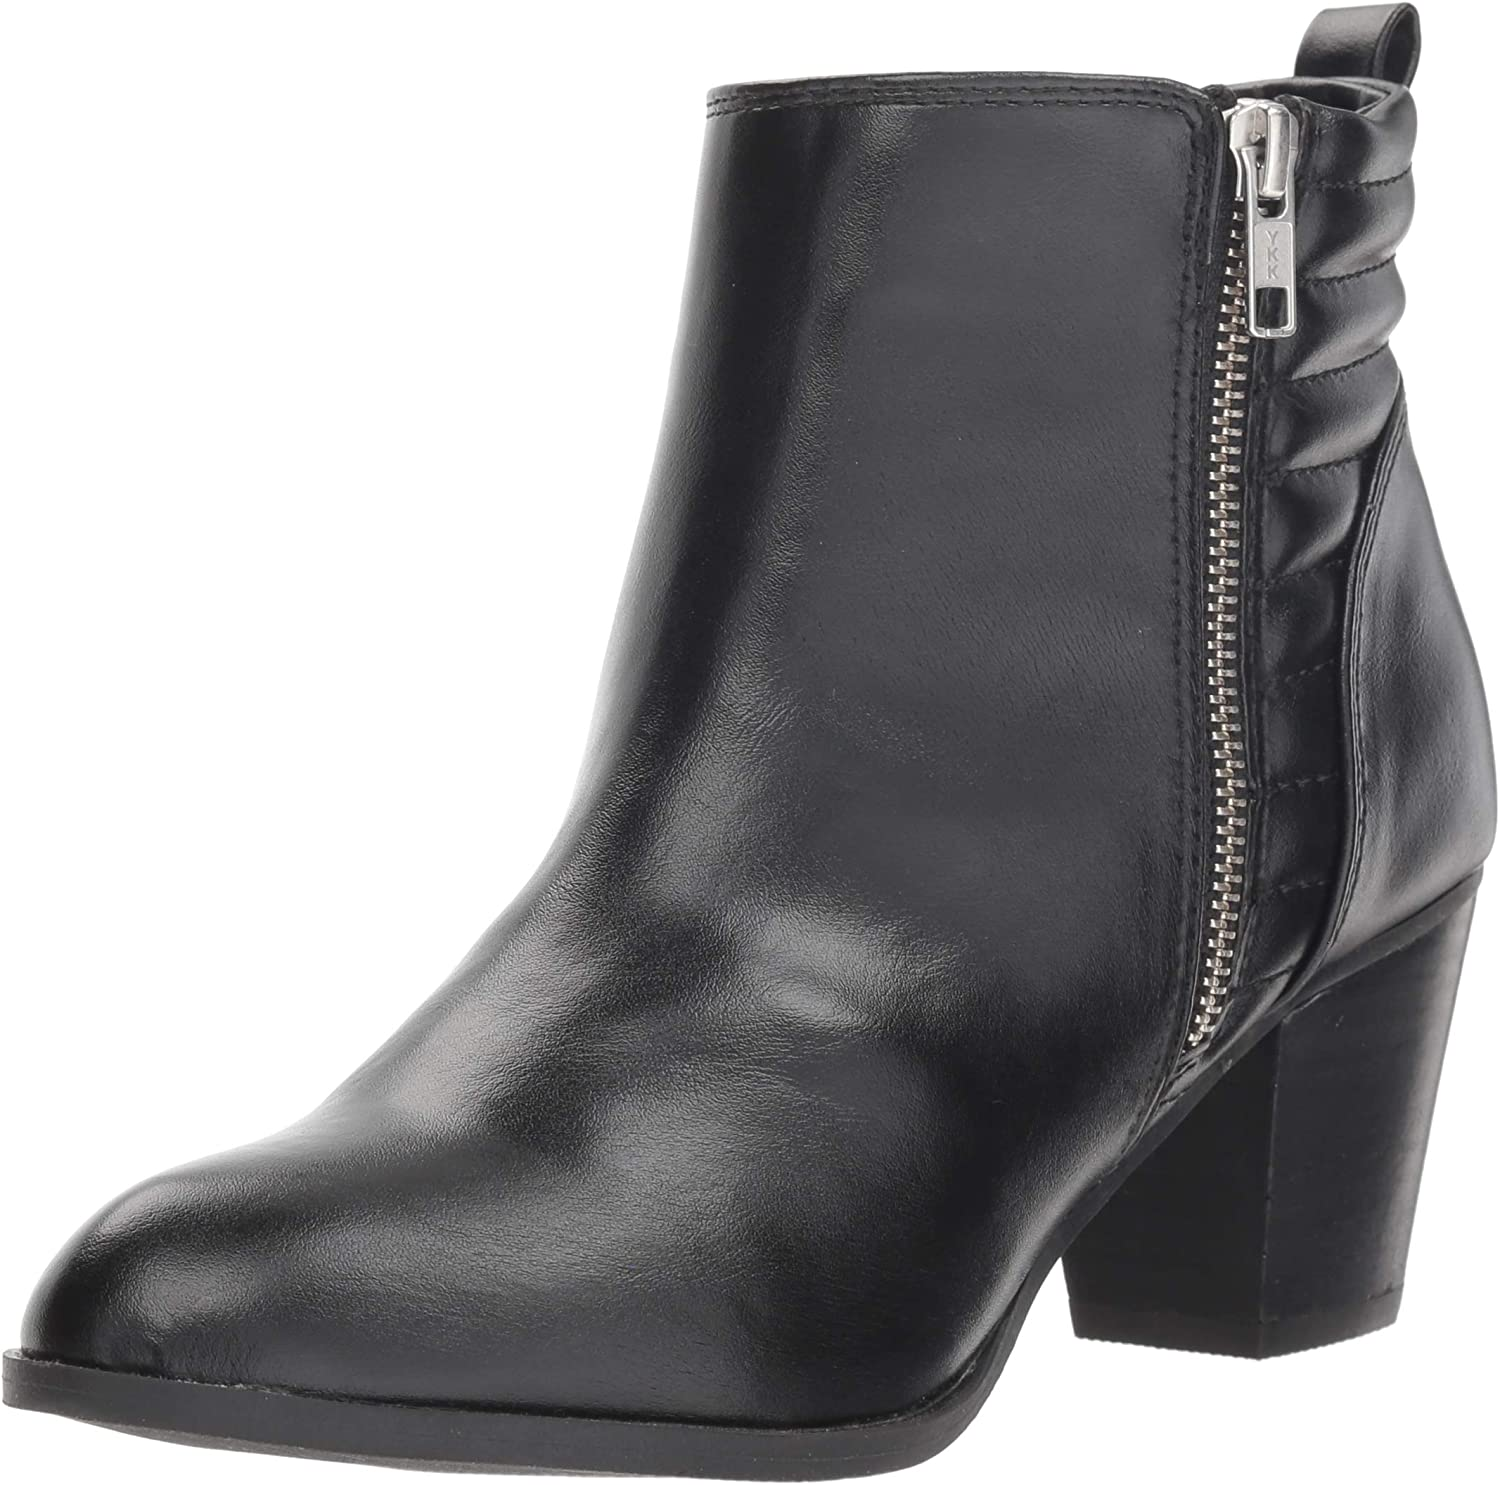 Report Womens Capsie Ankle Boot